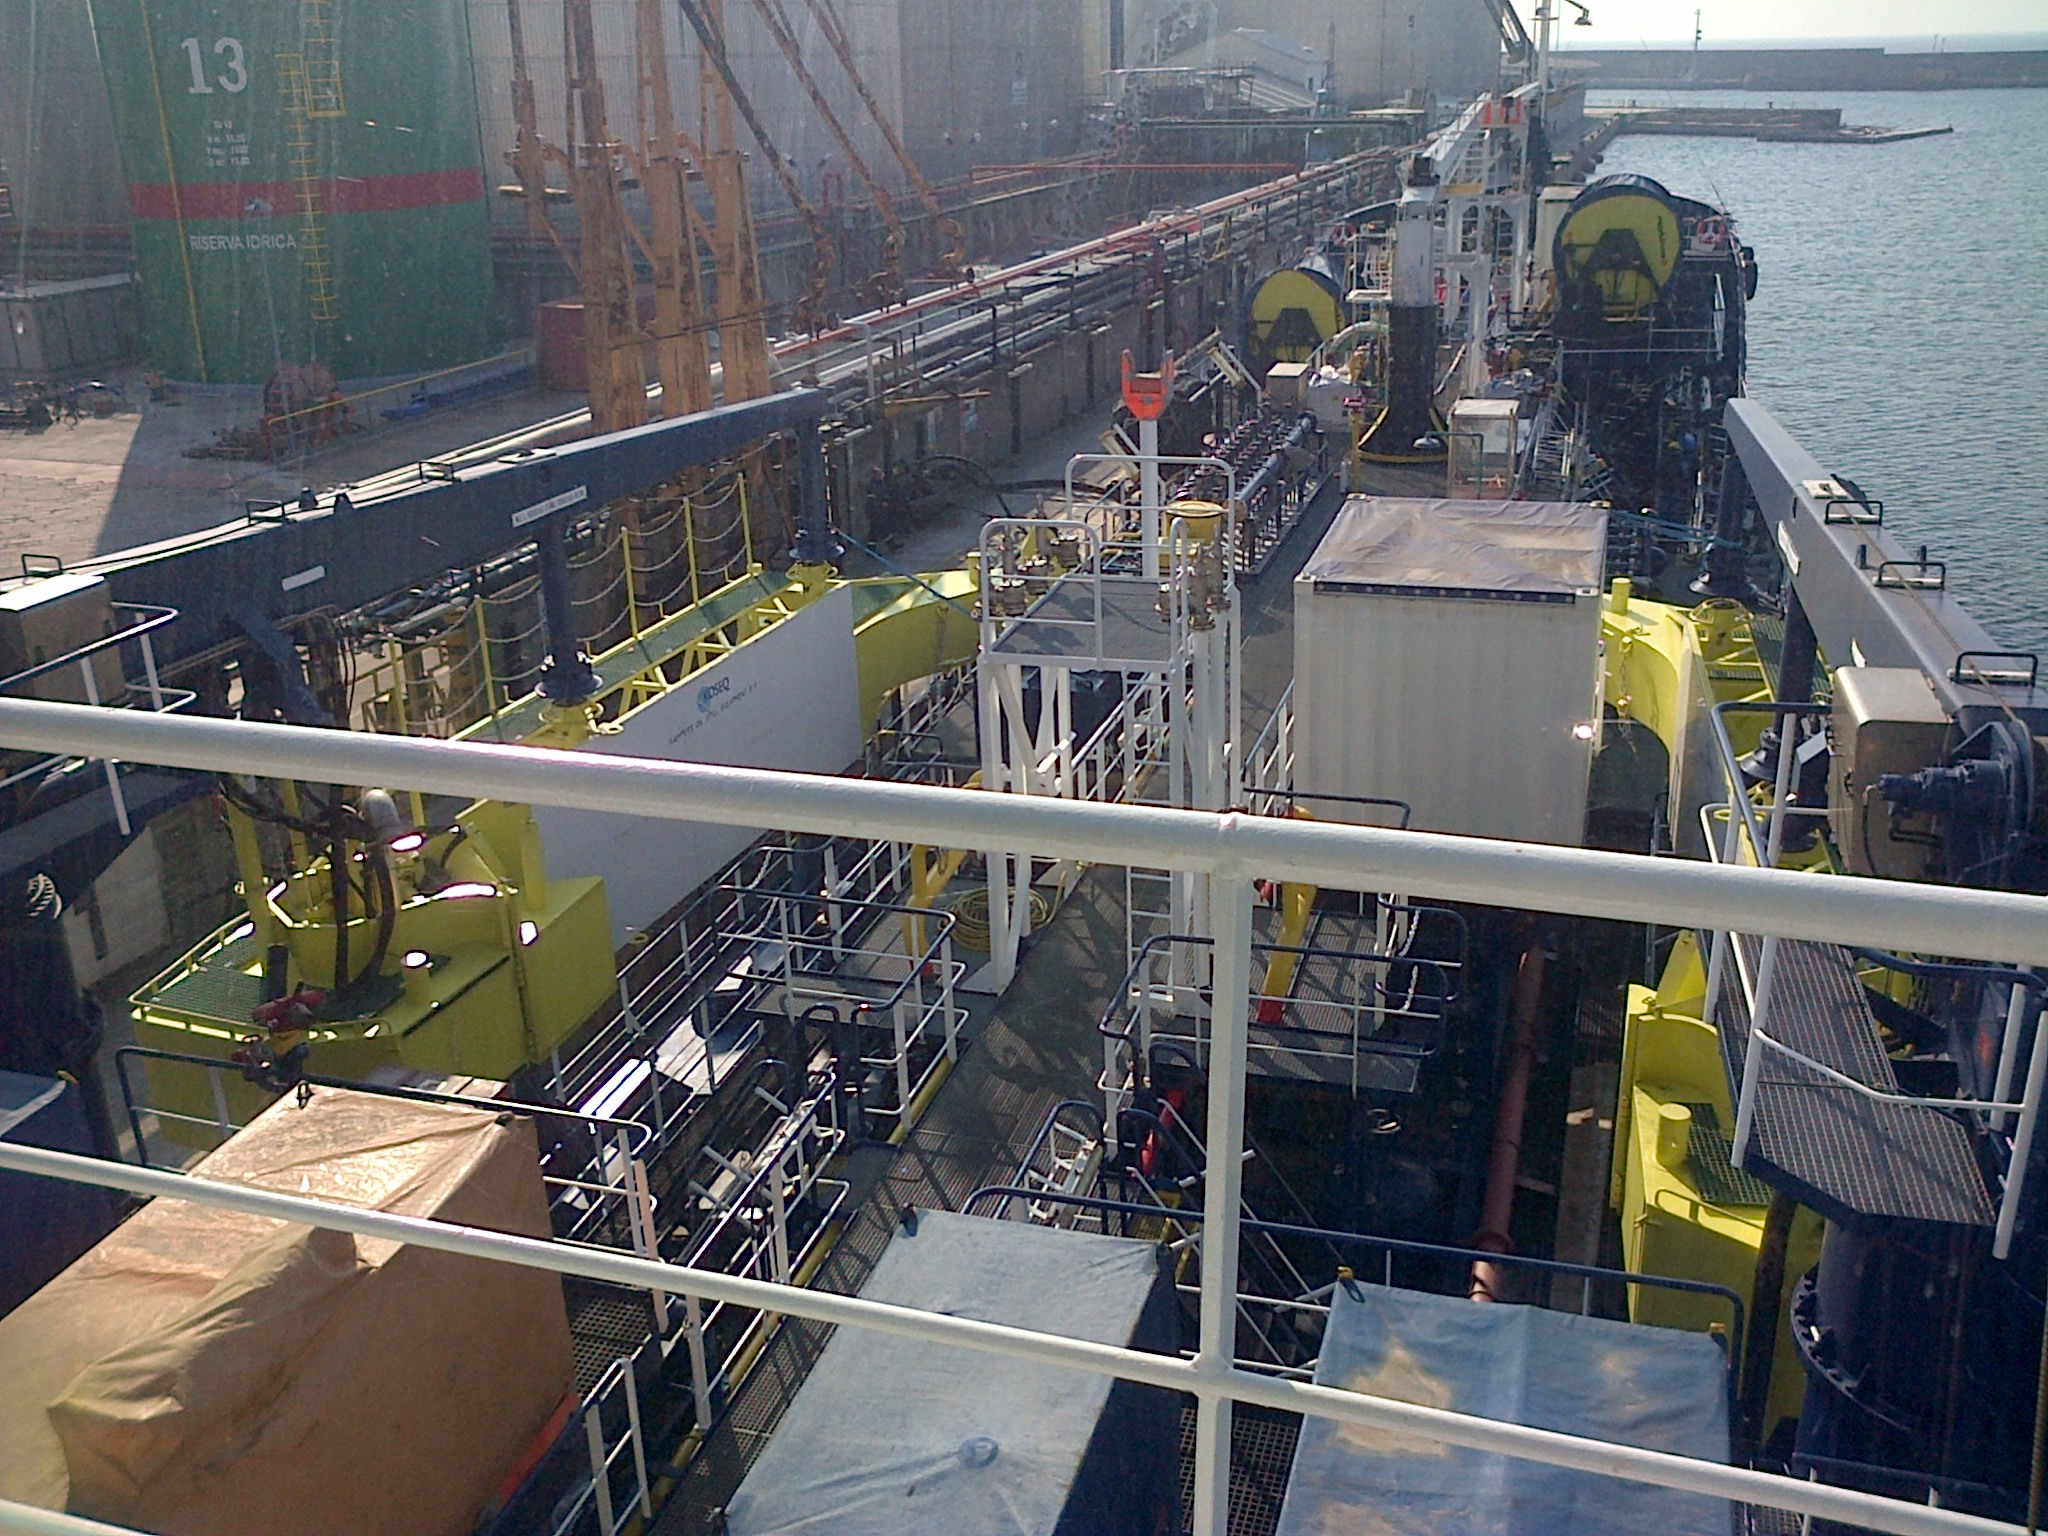 Installation of Oil Recovery Equipment